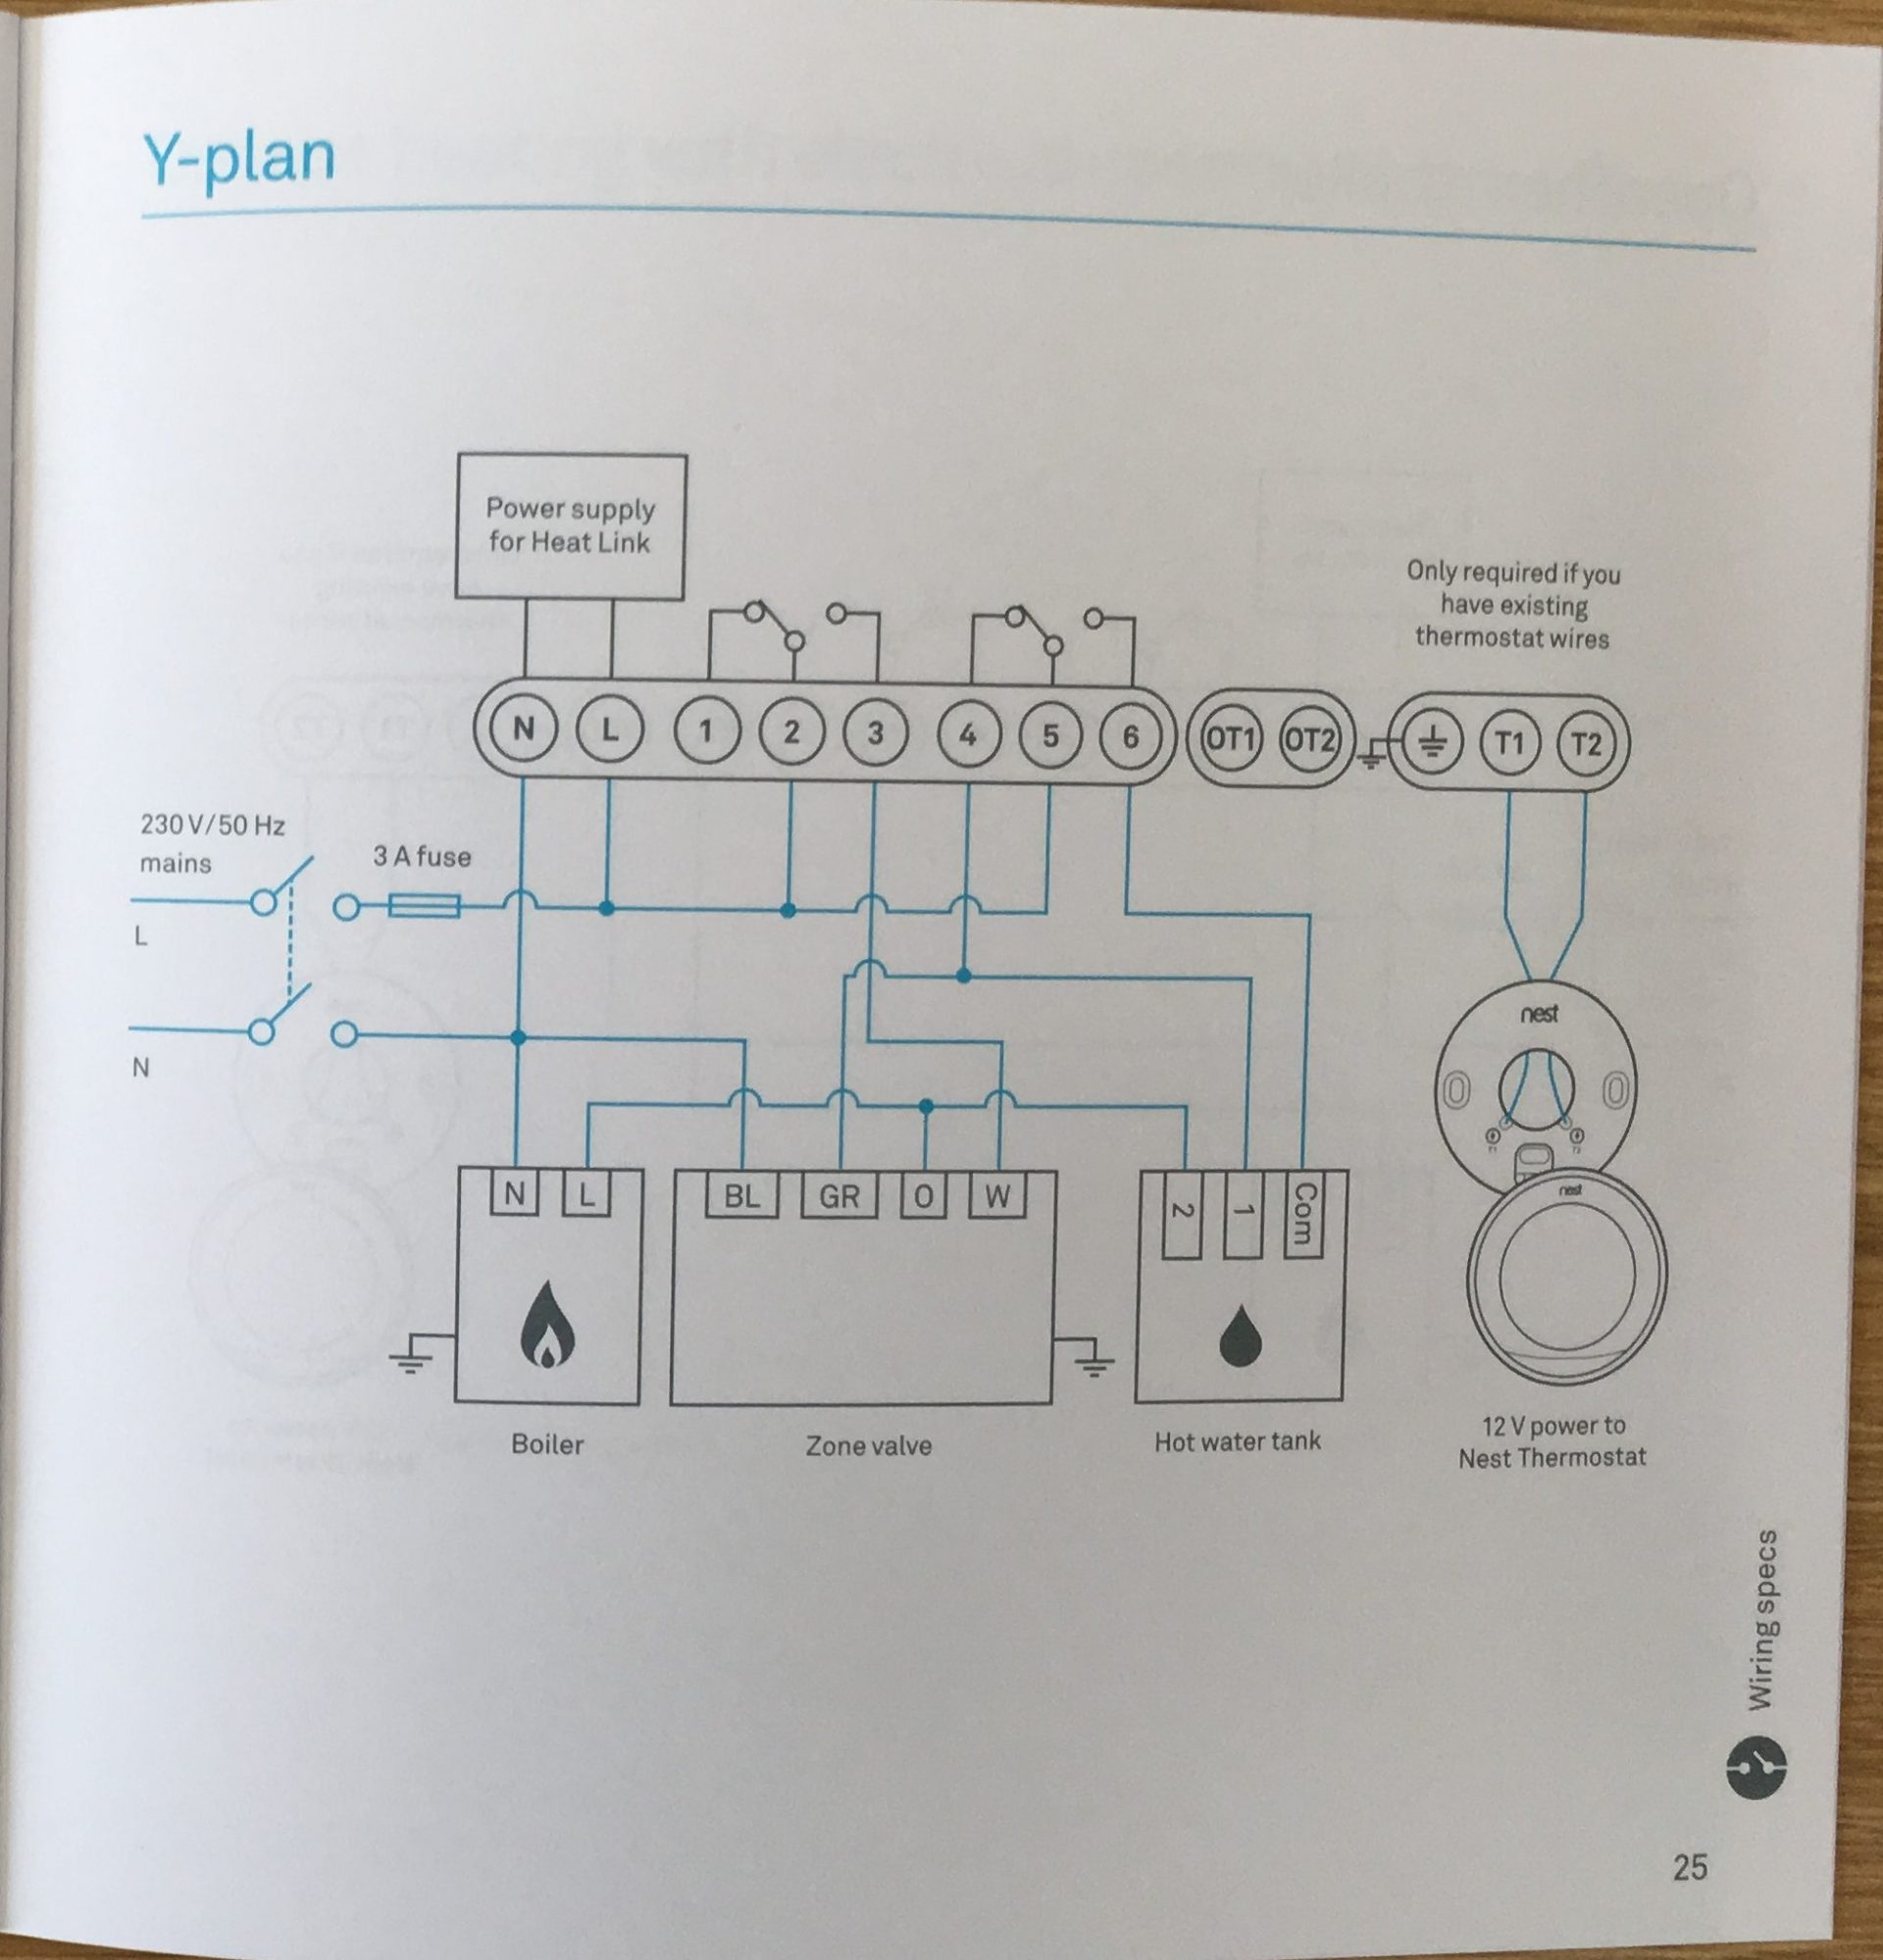 How To Install The Nest Learning Thermostat (3Rd Gen) In A Y-Plan - Nest Wiring Diagram Uk